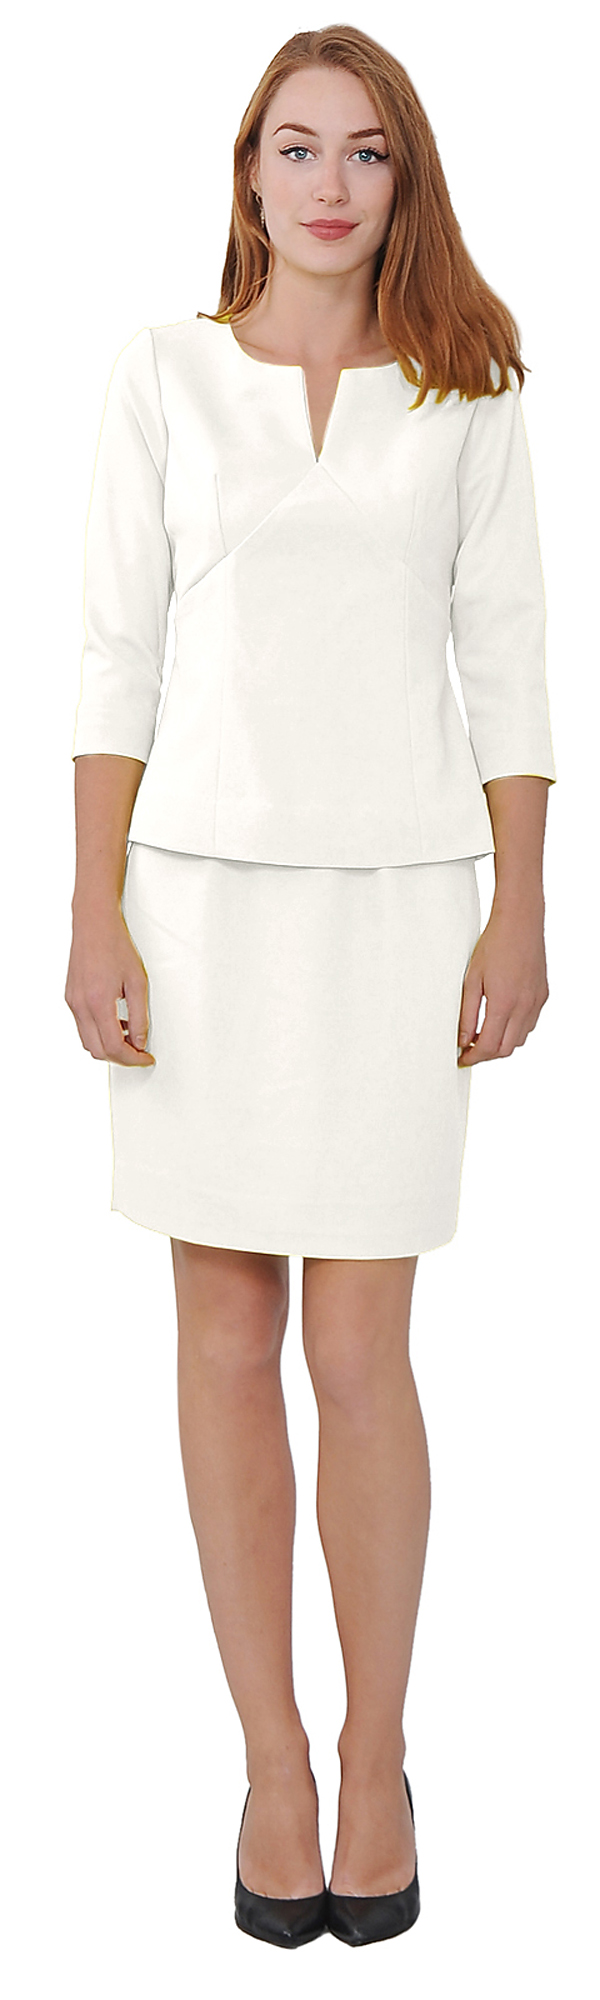 Shop for juniors white skirt suits online at Target. Free shipping on purchases over $35 and save 5% every day with your Target REDcard.